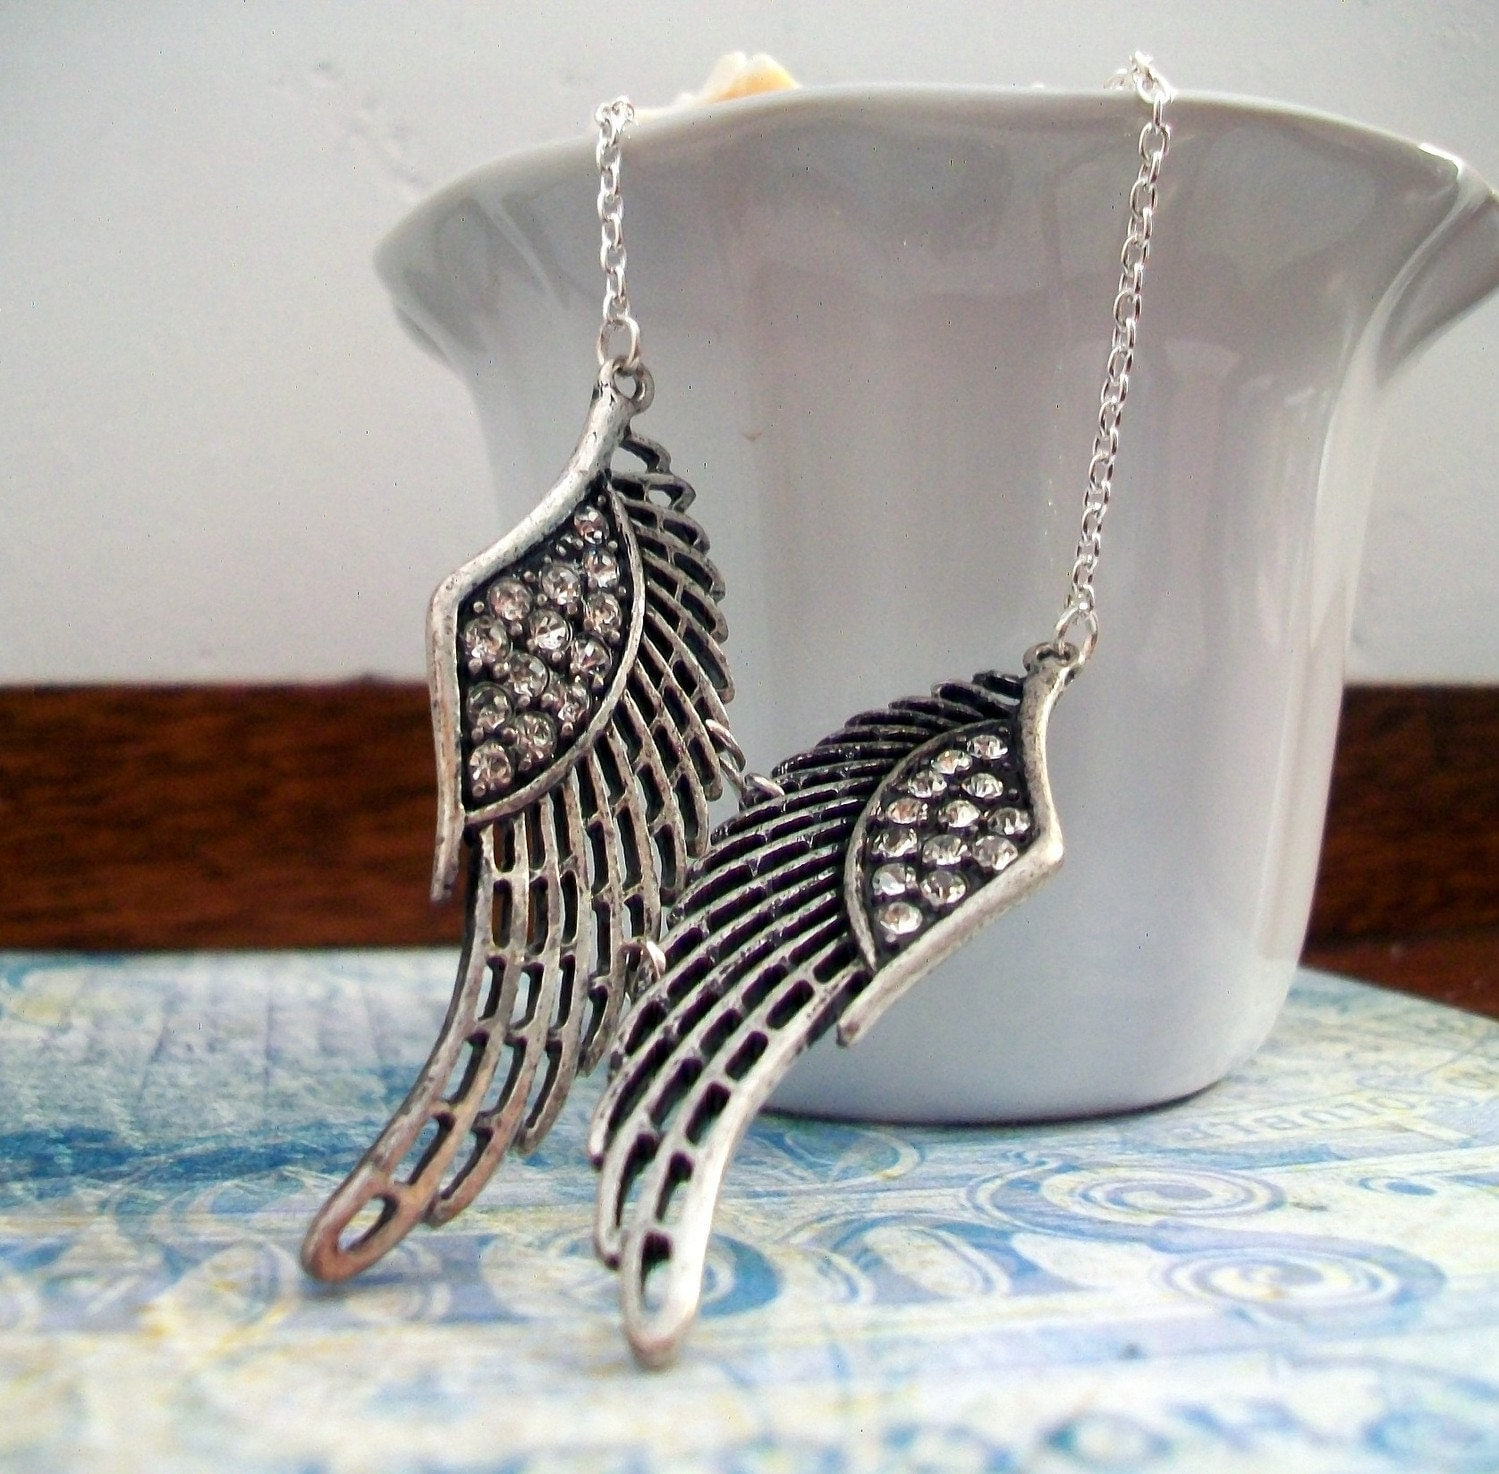 Celebrity Inspired Angel Wing Necklace in Silver by TAKCreations from etsy.com